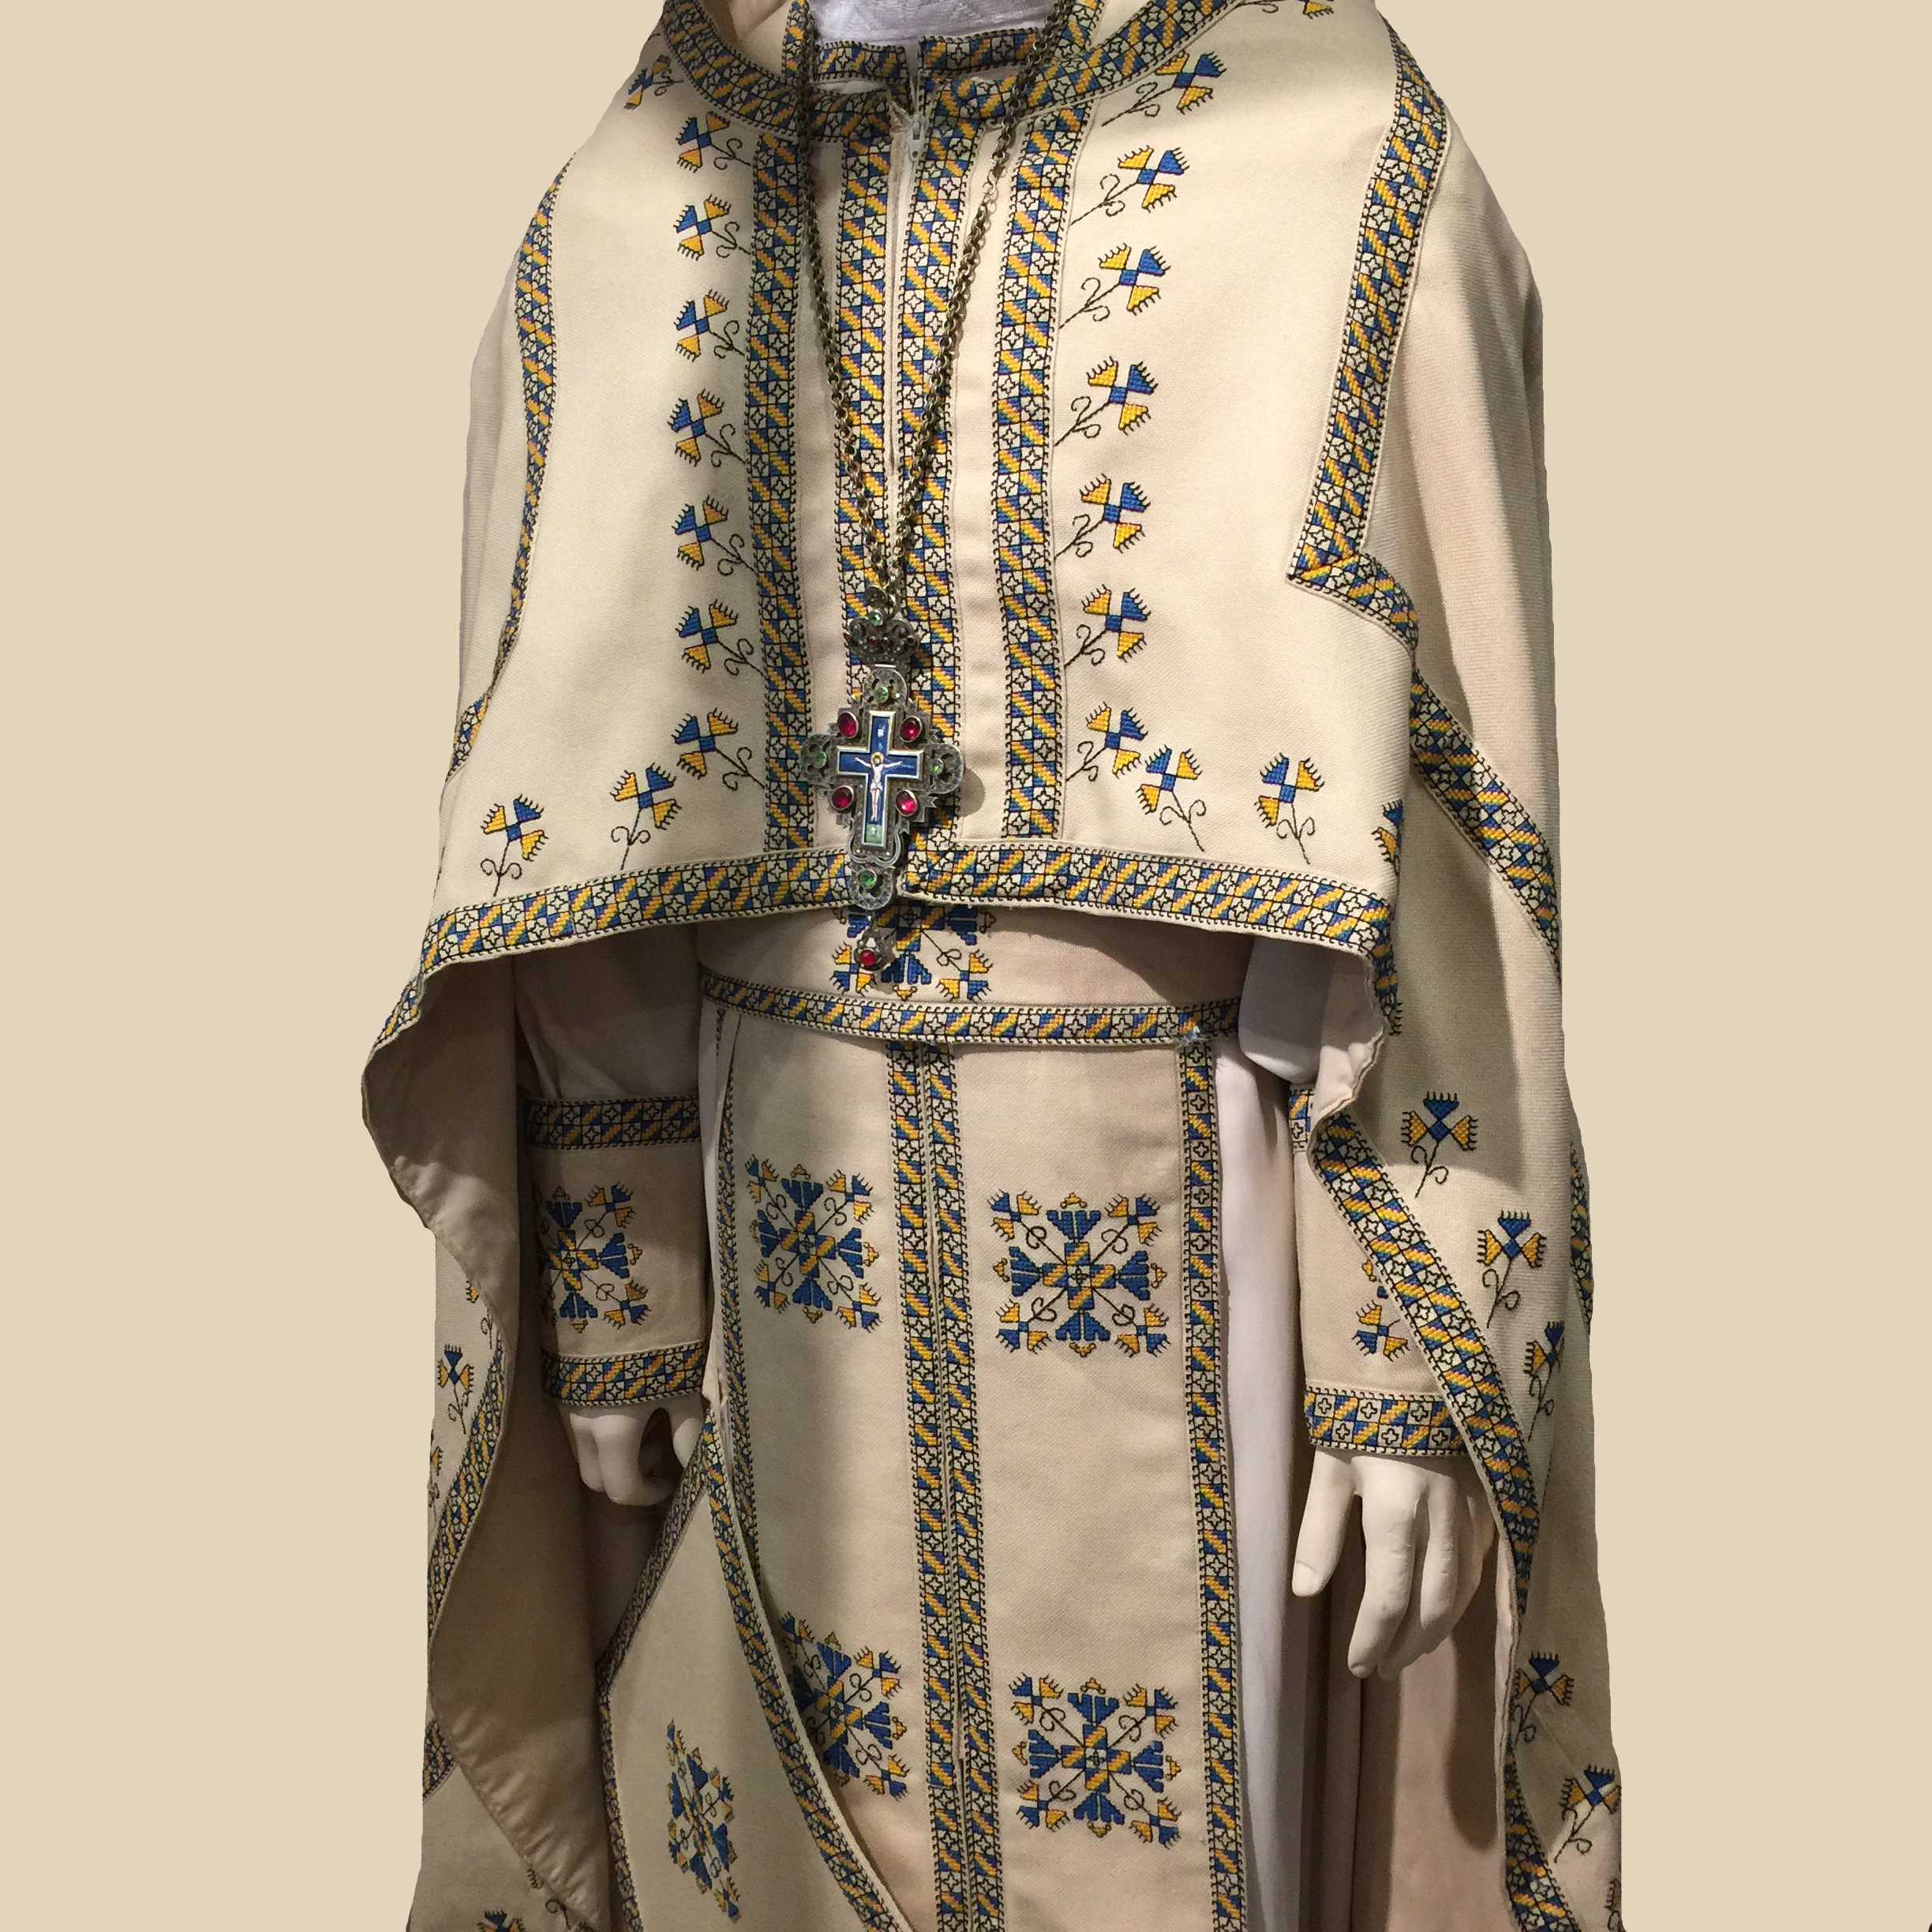 Liturgical Vestments Богослужбове Облачення - The priest's vestments include a Dalmatic, which is a long, light-coloured robe with narrow sleeves. Maniples (cuffs) are worn at the wrist. The Epitrachelion (stole), which goes around the neck with the two ends hanging down evenly in front, symbolizes the priest's consecration and is tied with a Zone (ecclesiastical belt) at the waist. The Chasuble is a long, sleeveless cloak, shortened in front.